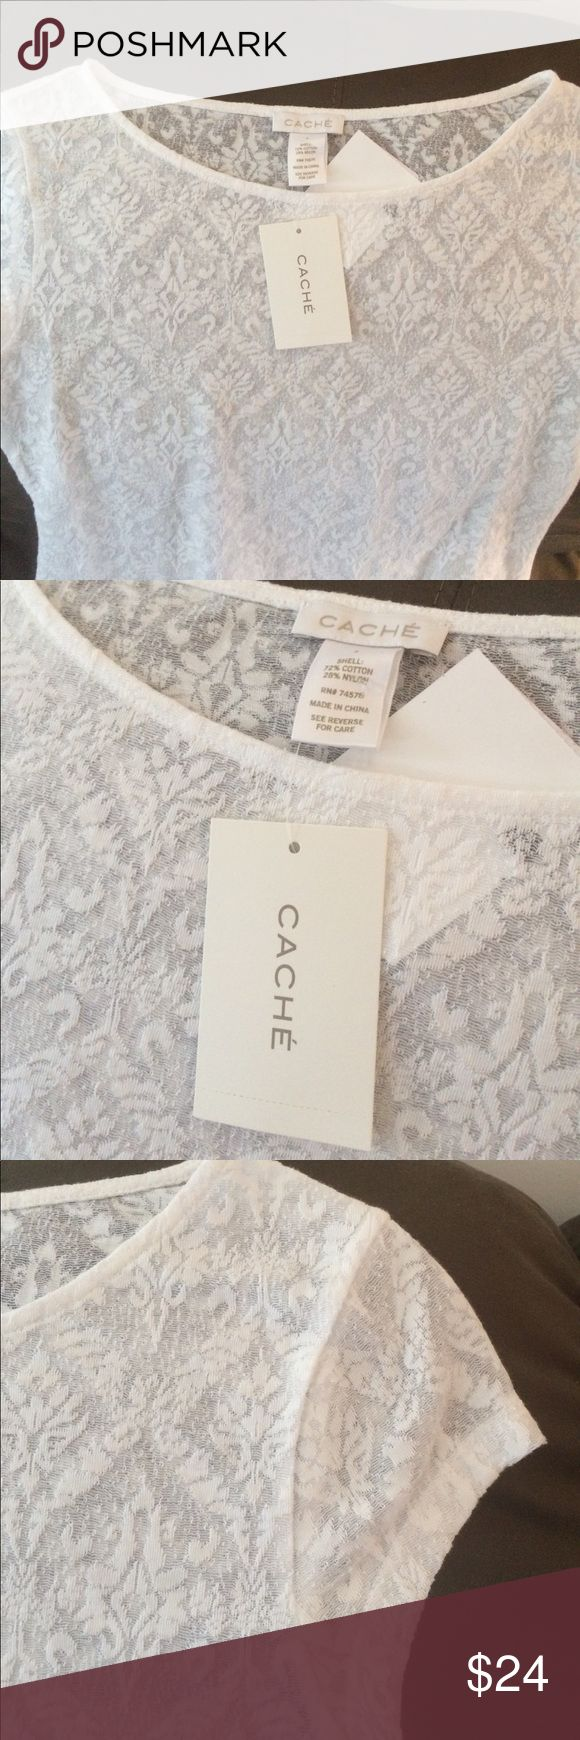 Cache NWT small stretch lace Semi-sheer CACHE top beautiful patterned lace Cache Tops Blouses